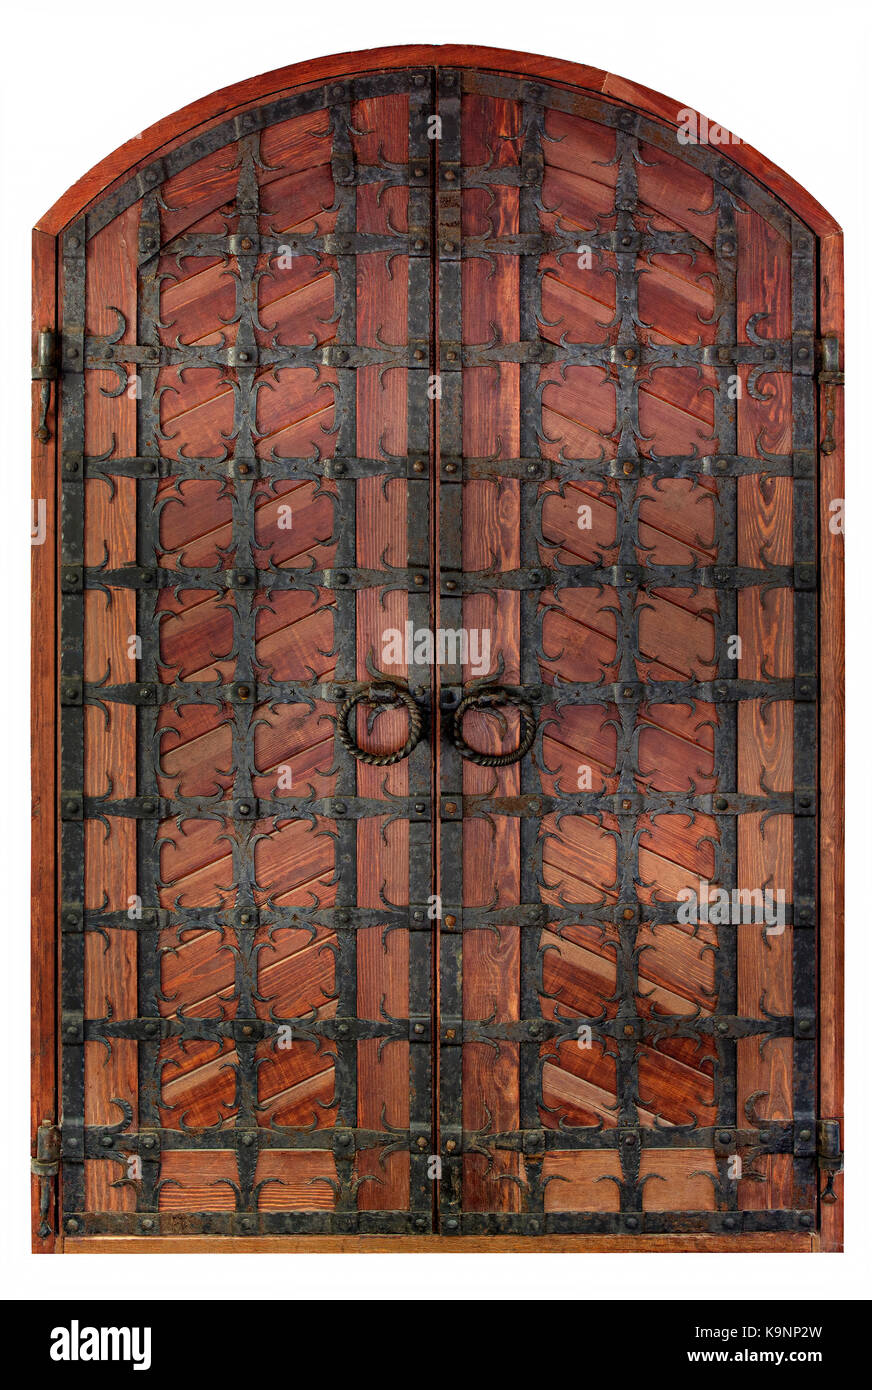 Antique wooden antique wooden doors with a forged iron grille and ...